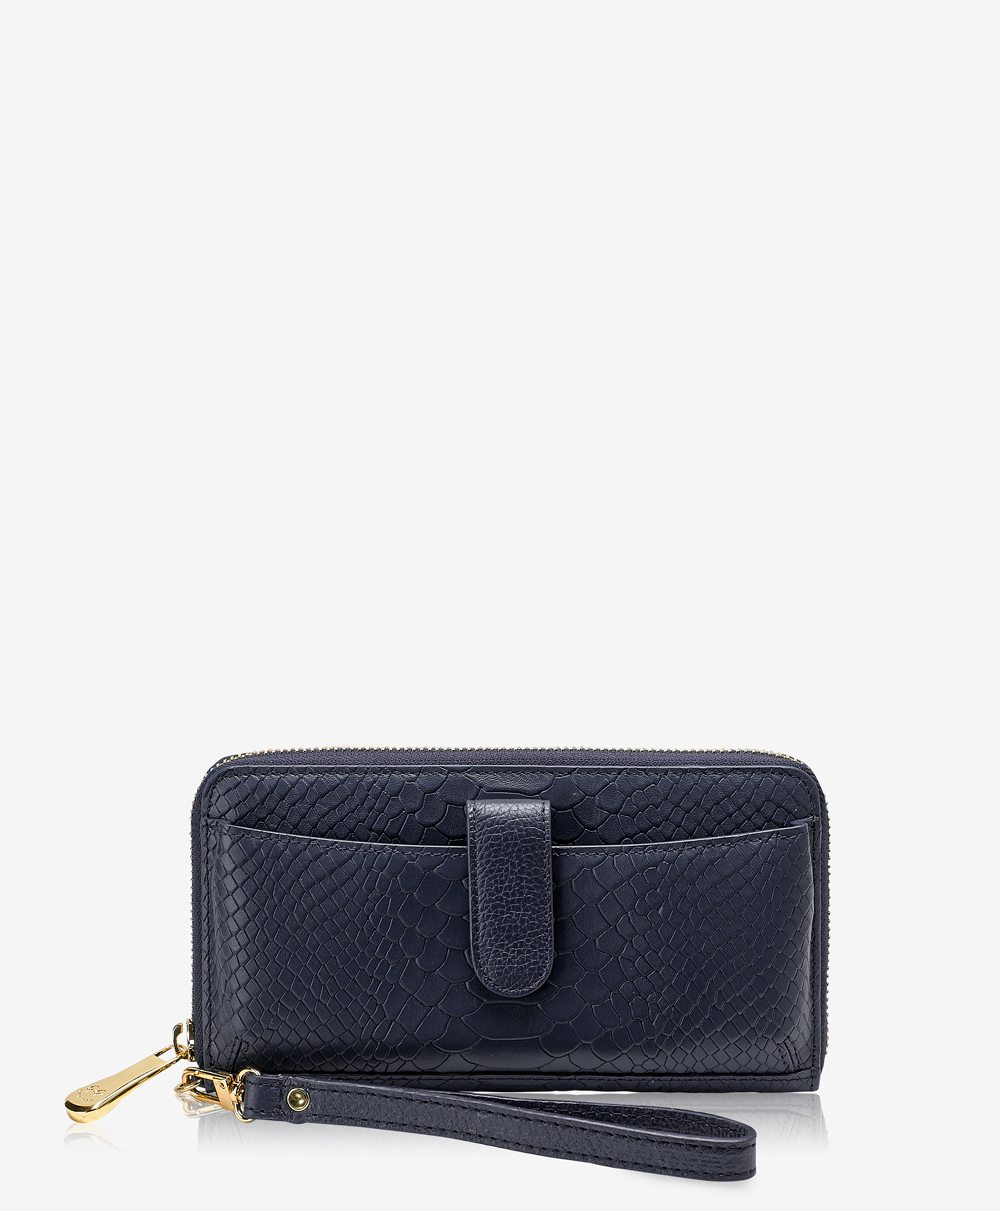 City Wallet Navy Embossed Python Leather